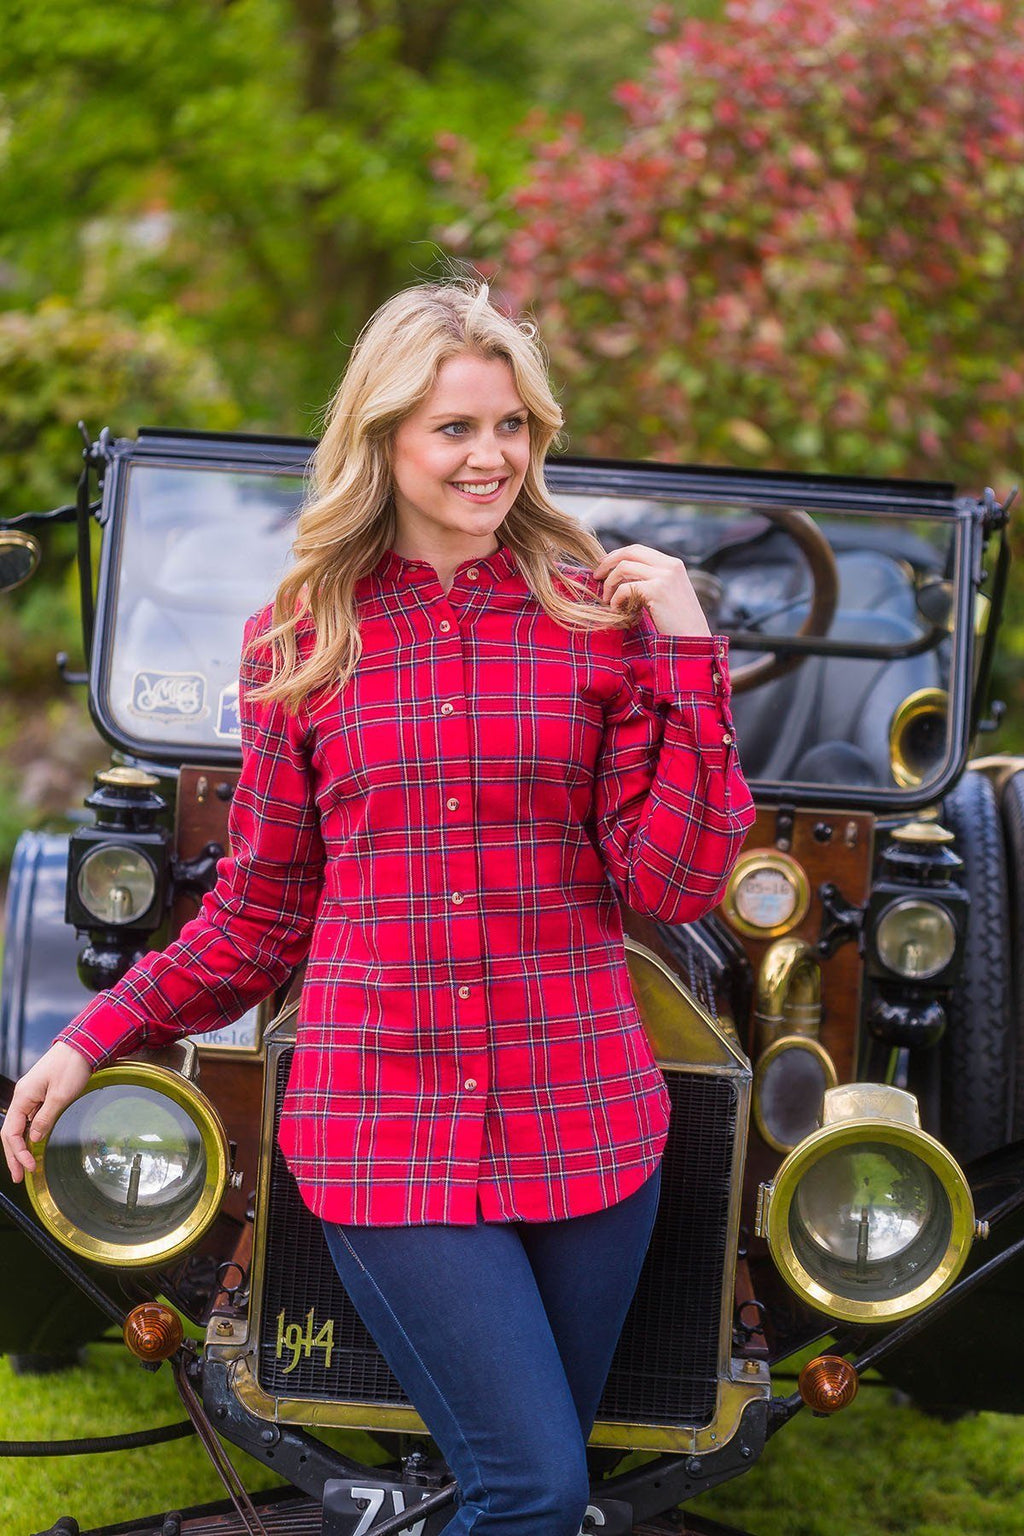 Grandfather Shirt Ladies Flannel Red Tartan - Royal Stewart (LV27) Grandad Shirts Lee Valley Ireland